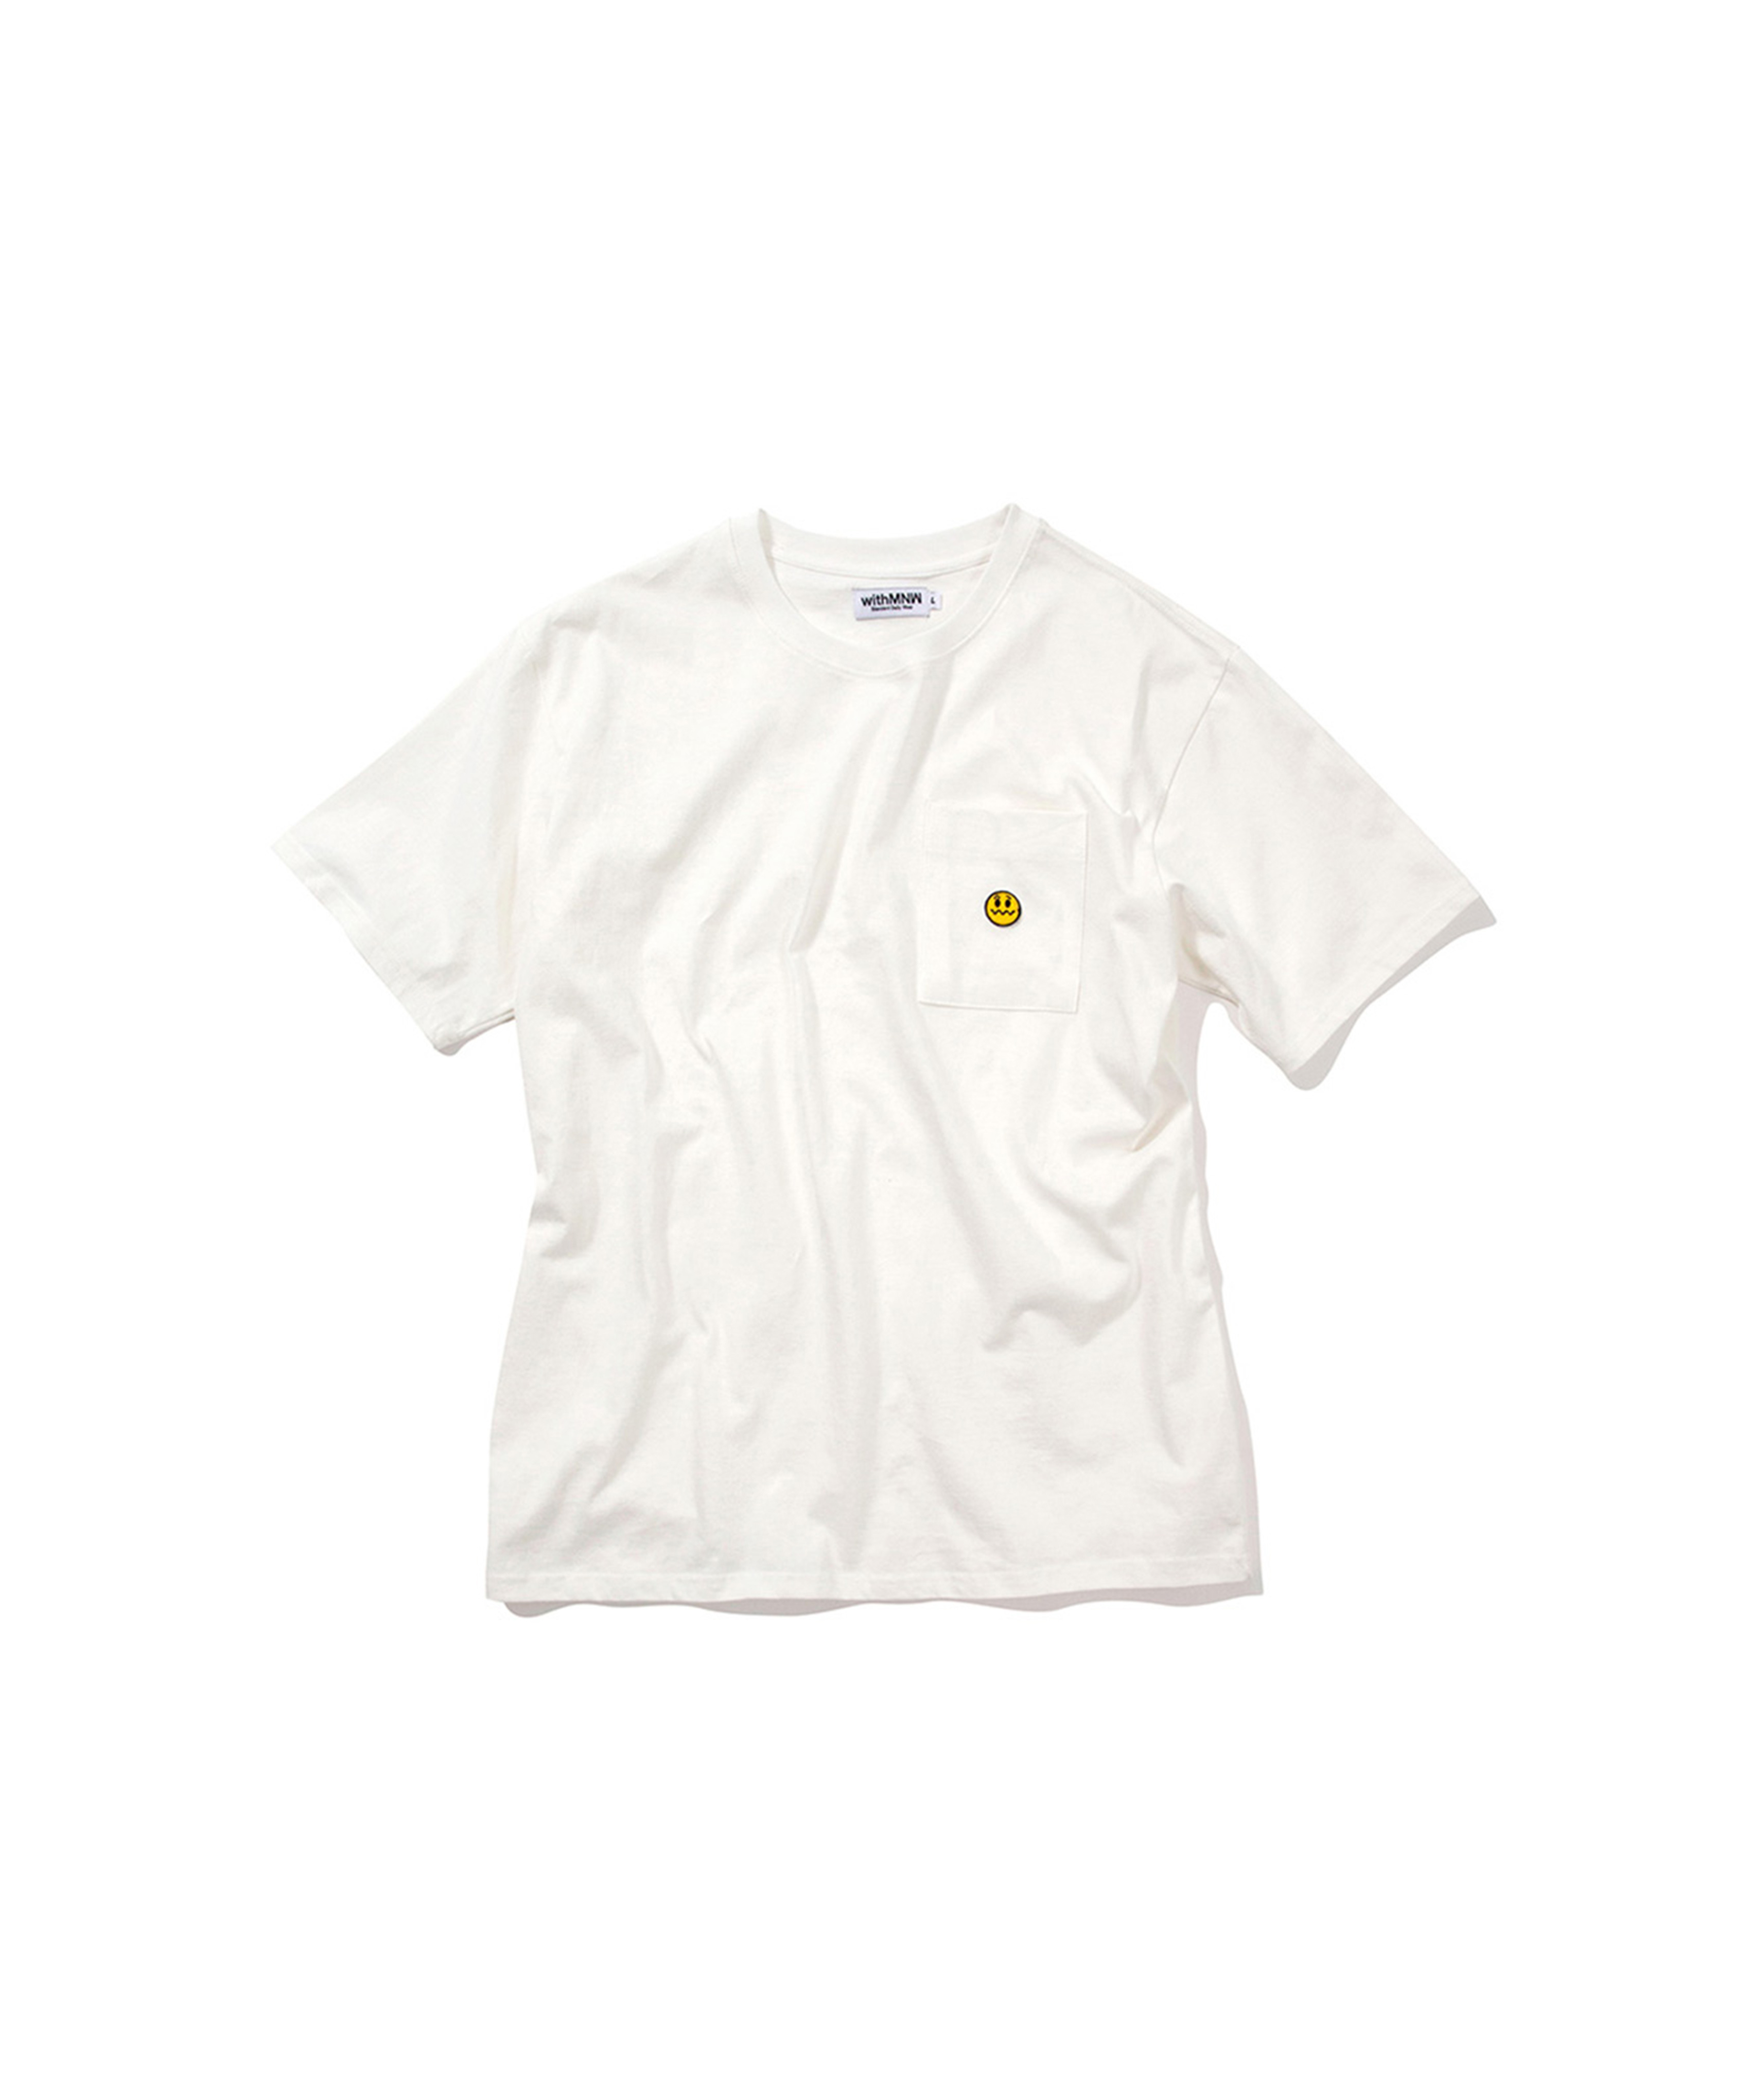 UNSMILE POCKET T-SHIRT WHITE